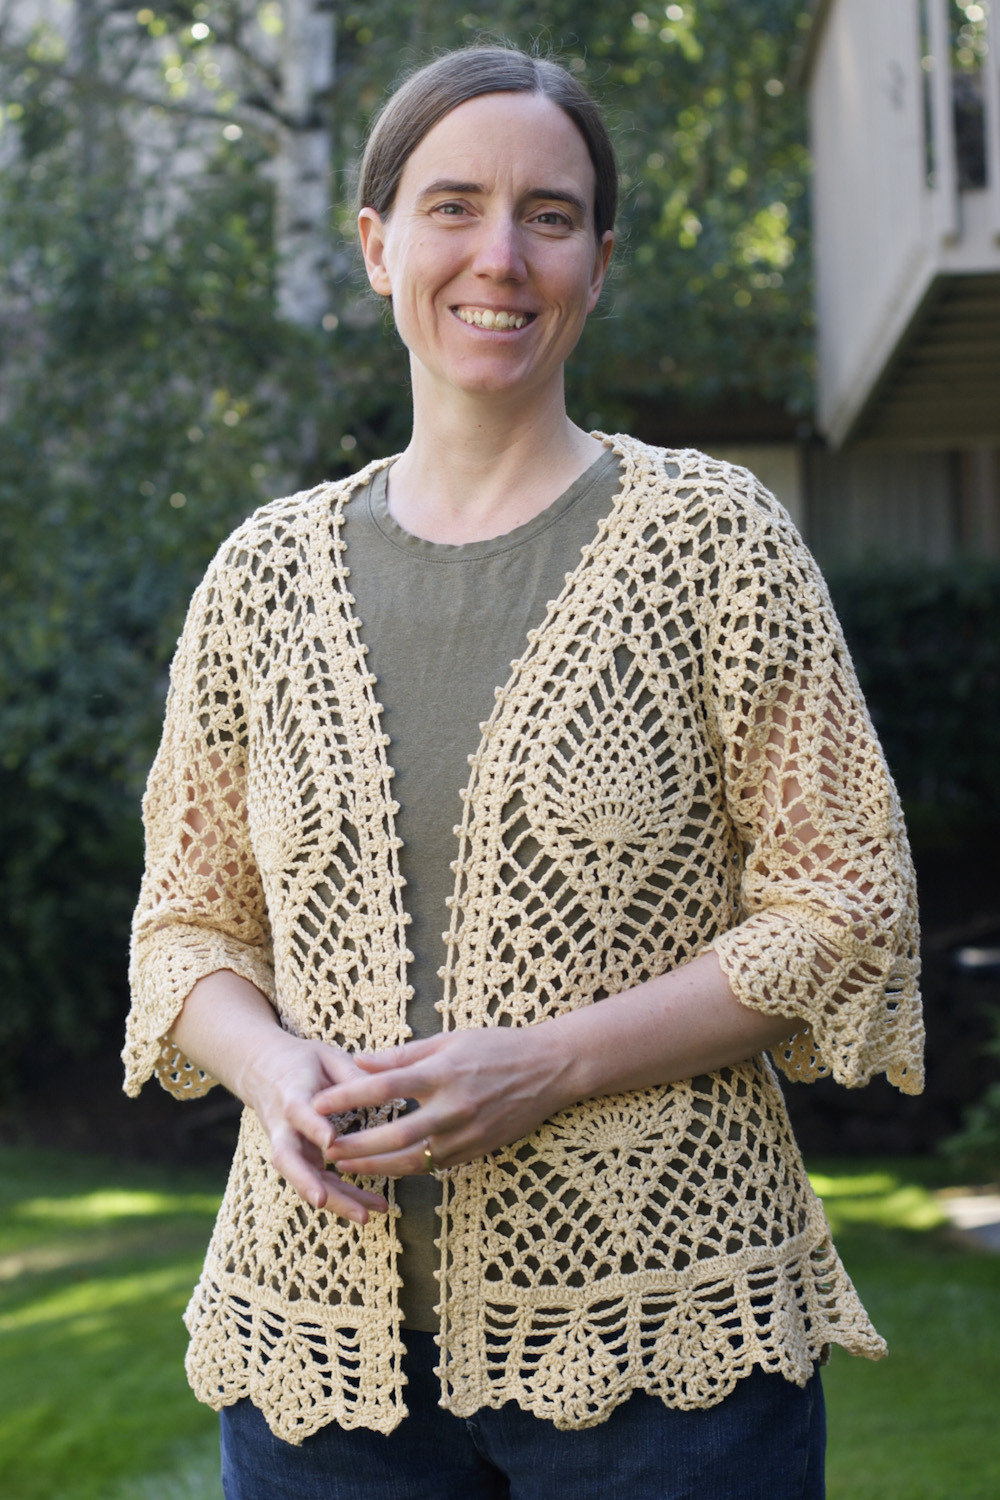 """Sweater Crochet Patterns Best Of """"we Do It the Hard Way"""" Cream Pineapple Crochet Sweater Of Amazing 49 Pictures Sweater Crochet Patterns"""